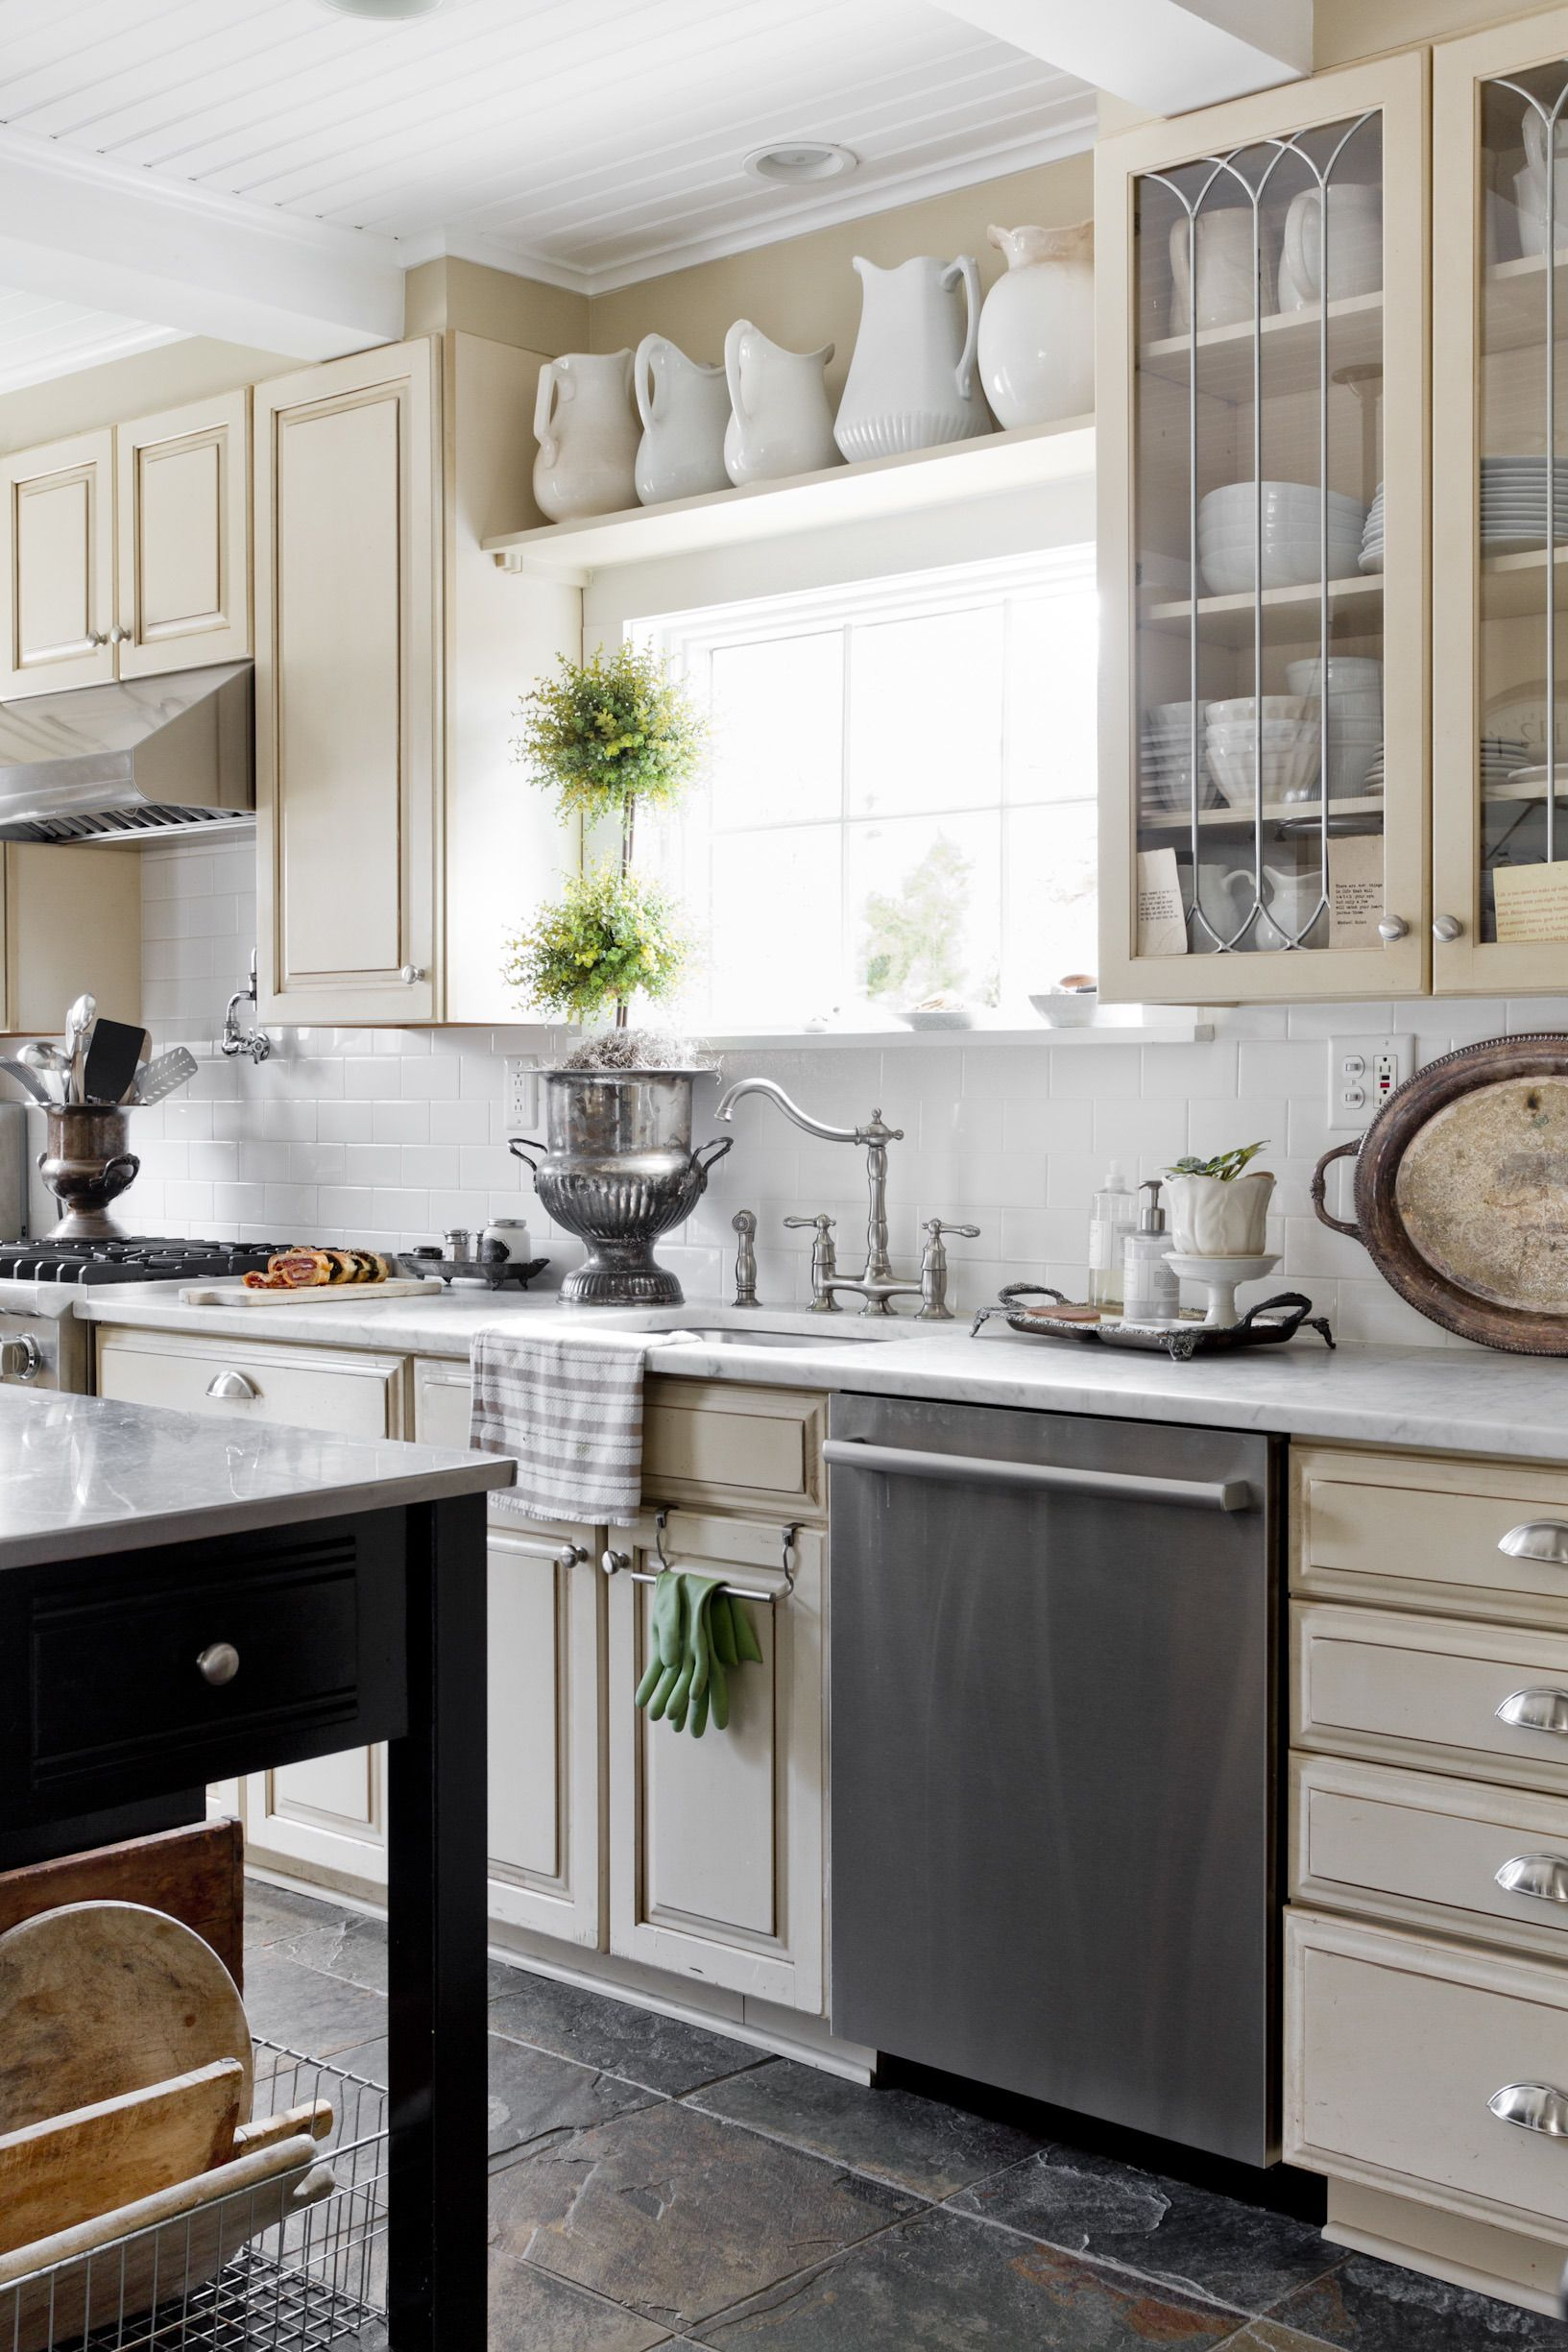 Window above kitchen cabinets  vintage chic home tour  kitchen collection kitchens and shelves